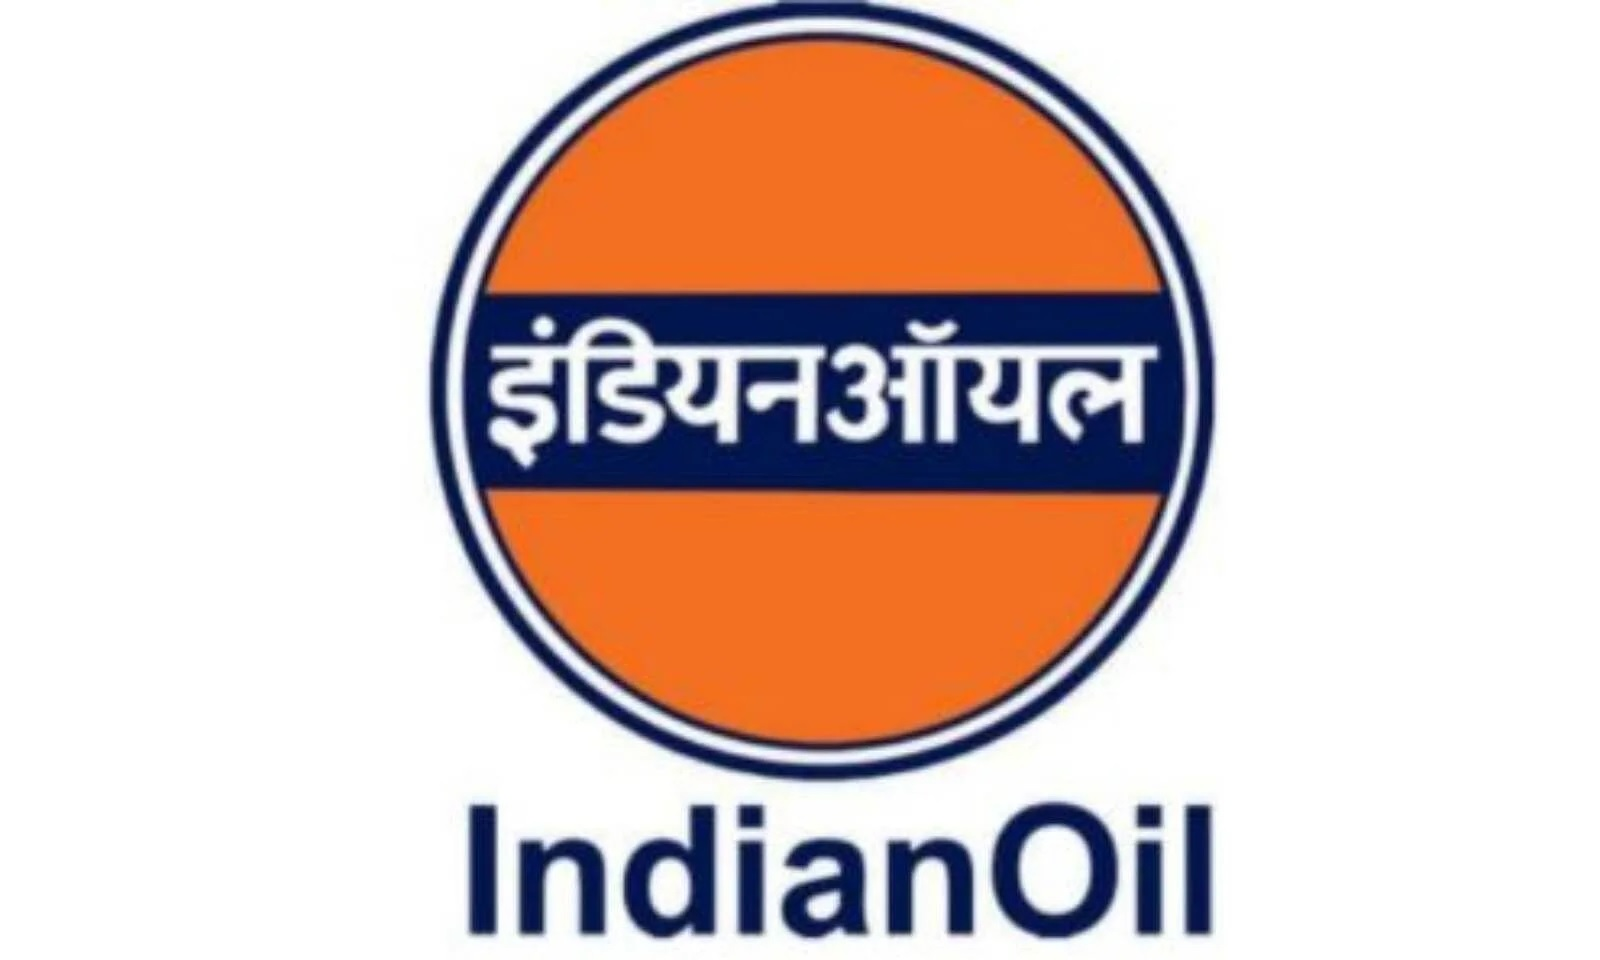 Indian Oil Corporation Limited (IOCL) Recruitment 2021